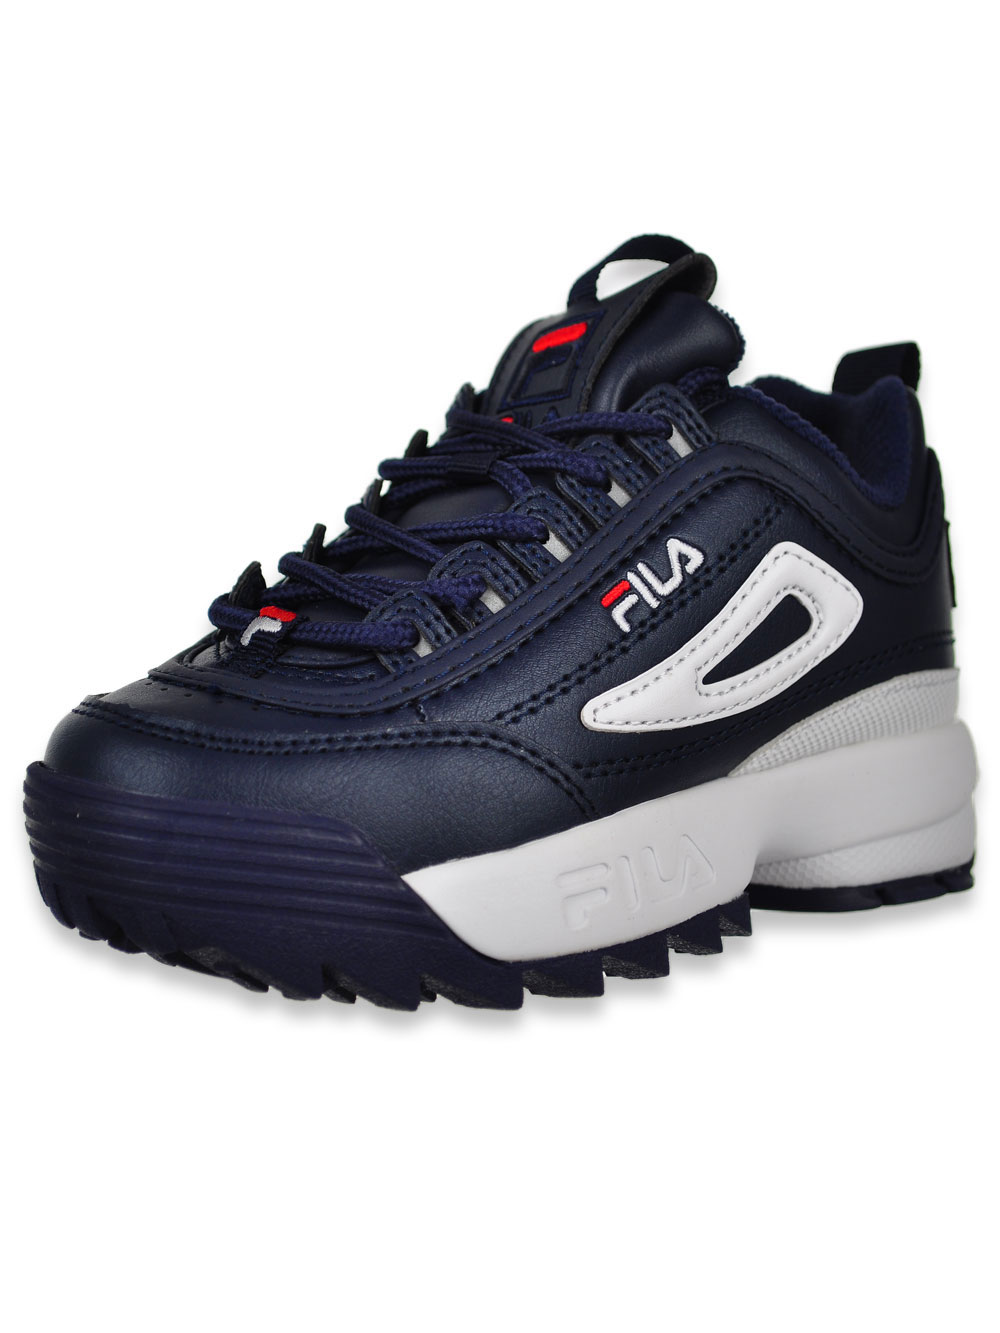 Fila Fila Boys' Disruptor II Sneakers (Sizes 11.5 3) bluemulti, 12 toddler